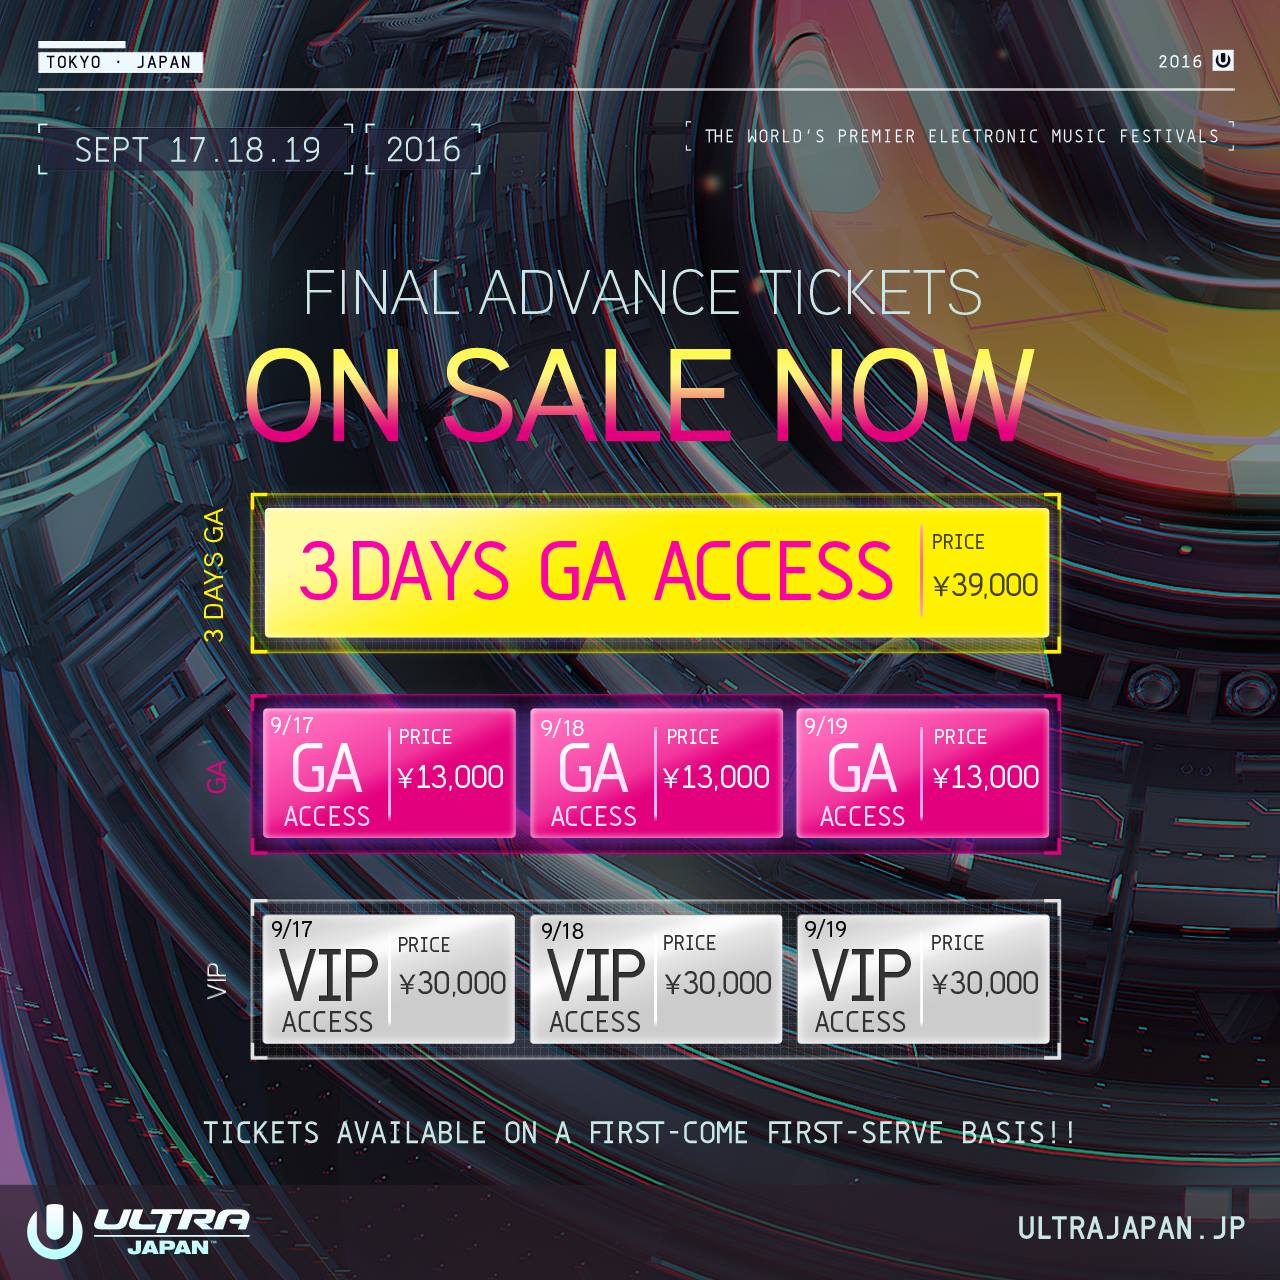 FINAL ADVANCE TICKET SALES STARTS NOW